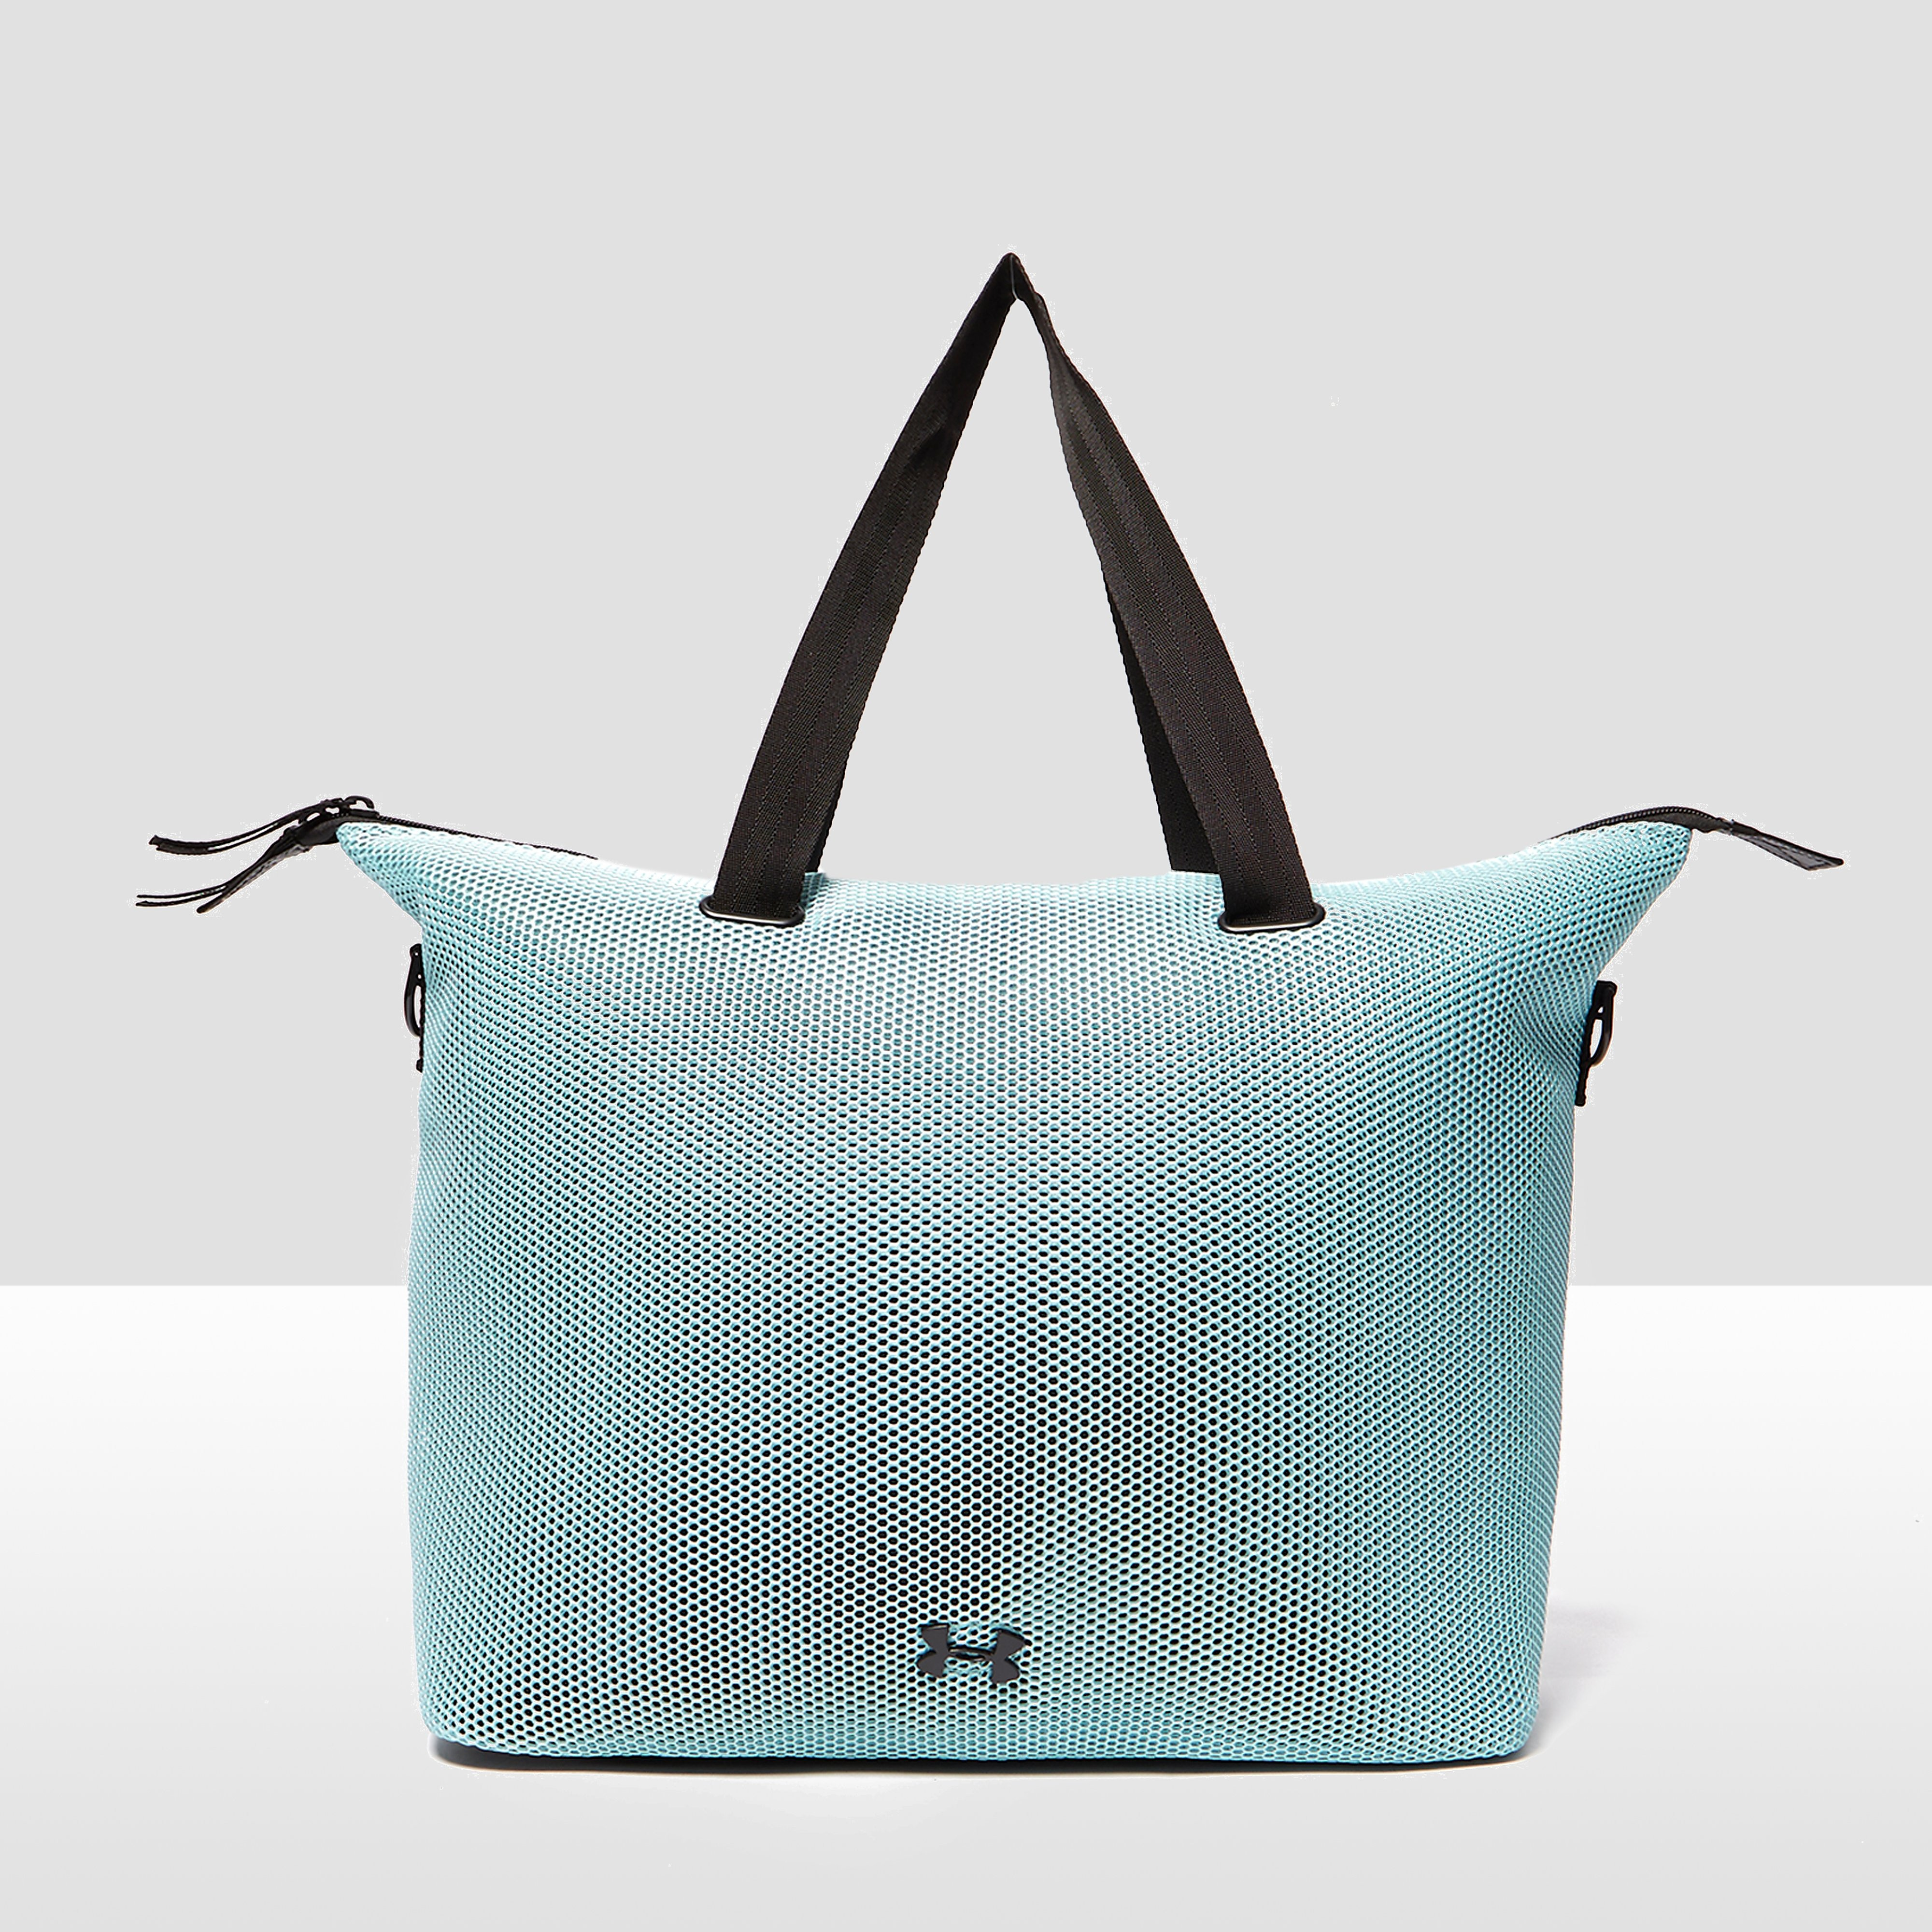 Under Armour On The Run Women's Tote Bag